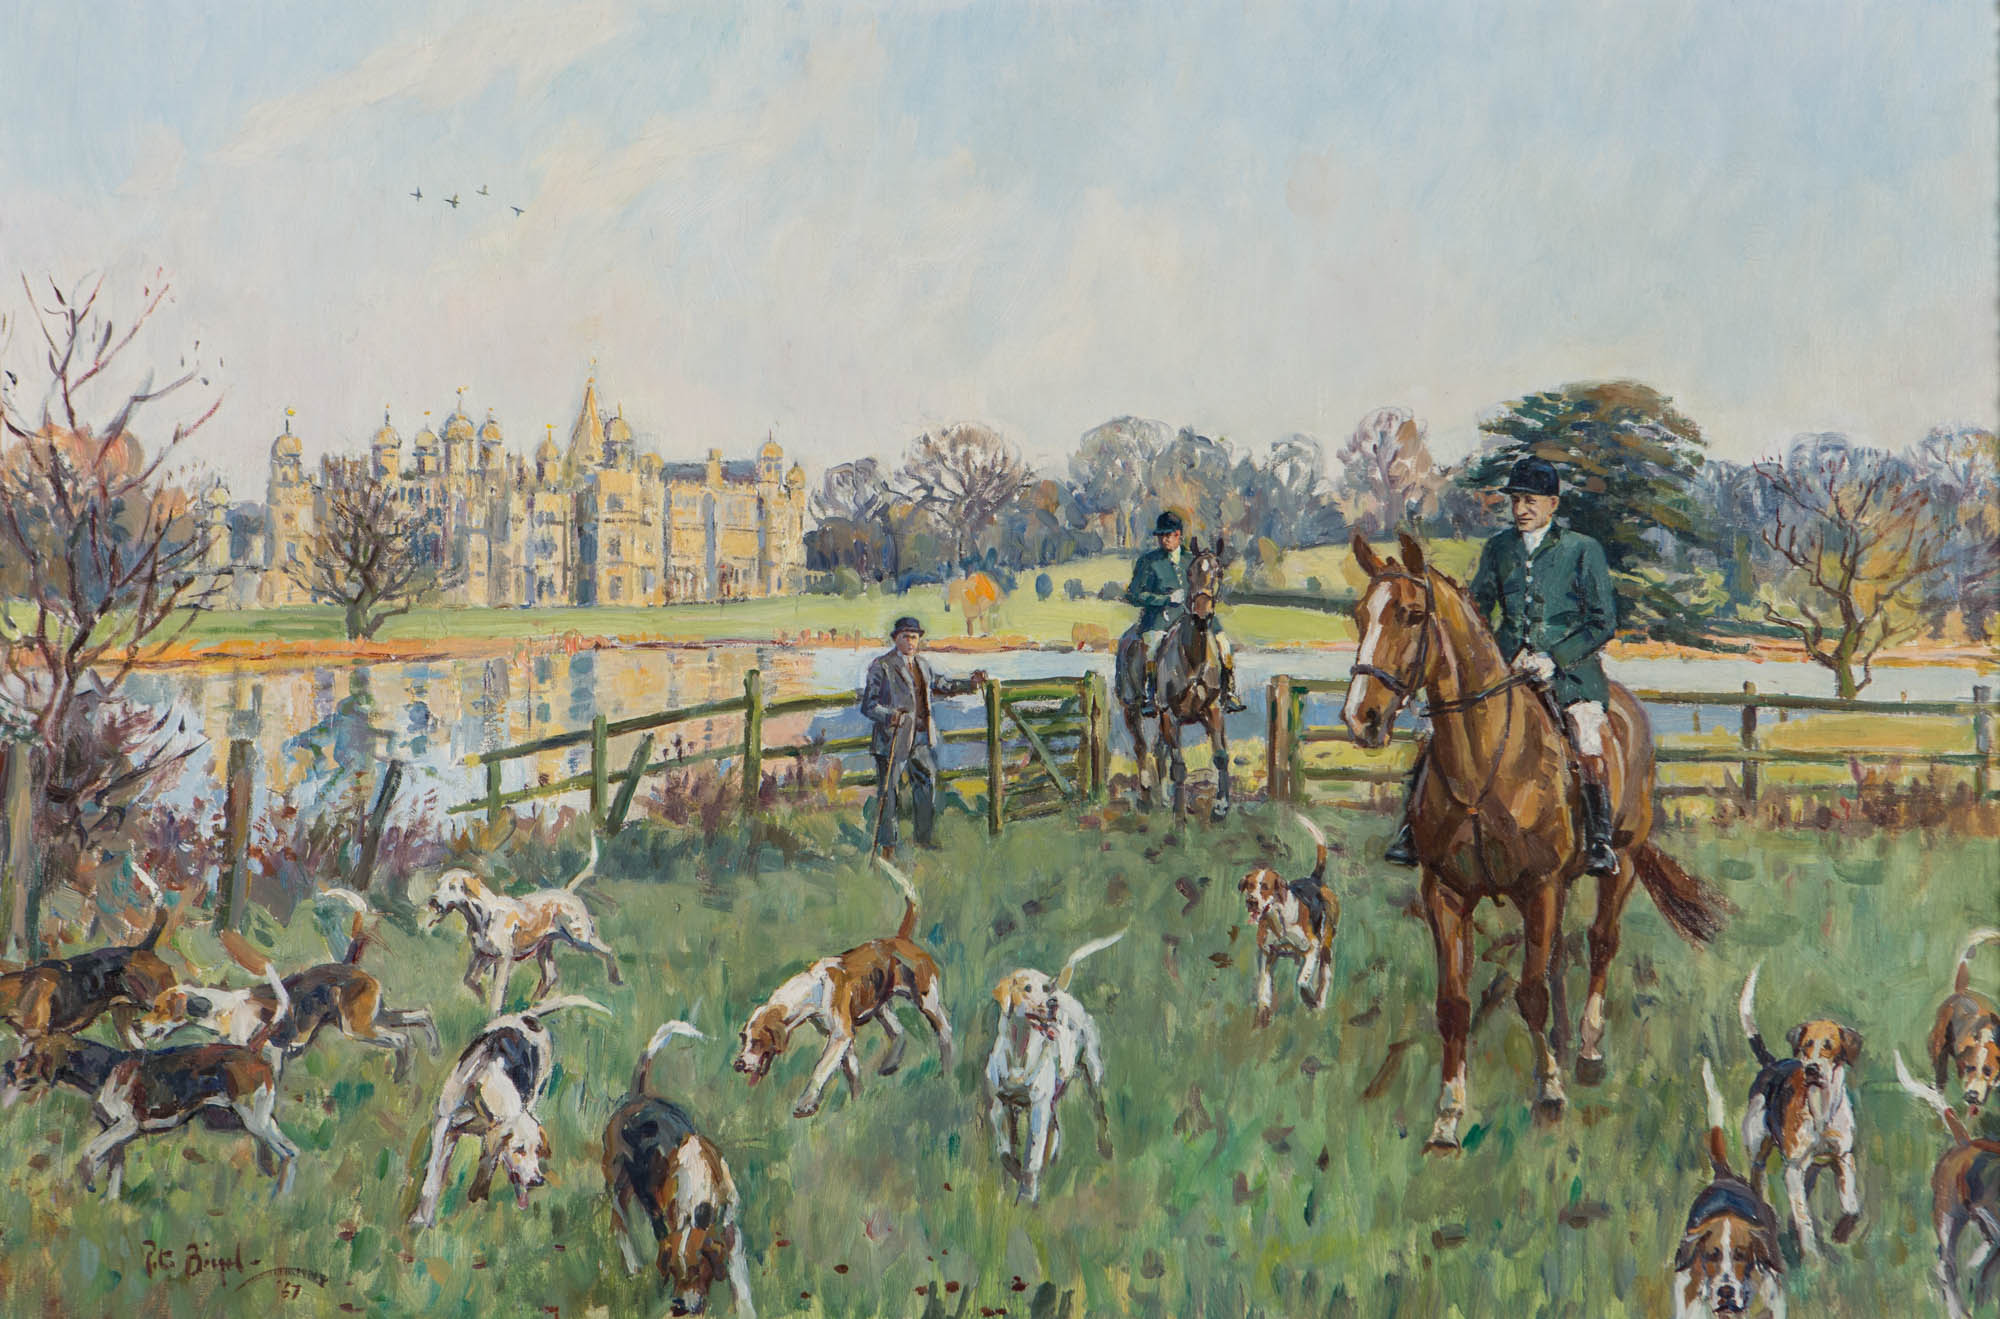 The 6th Marquess of Exeter, with his Hounds at Burghley, by Peter Biegel (1913-1988).